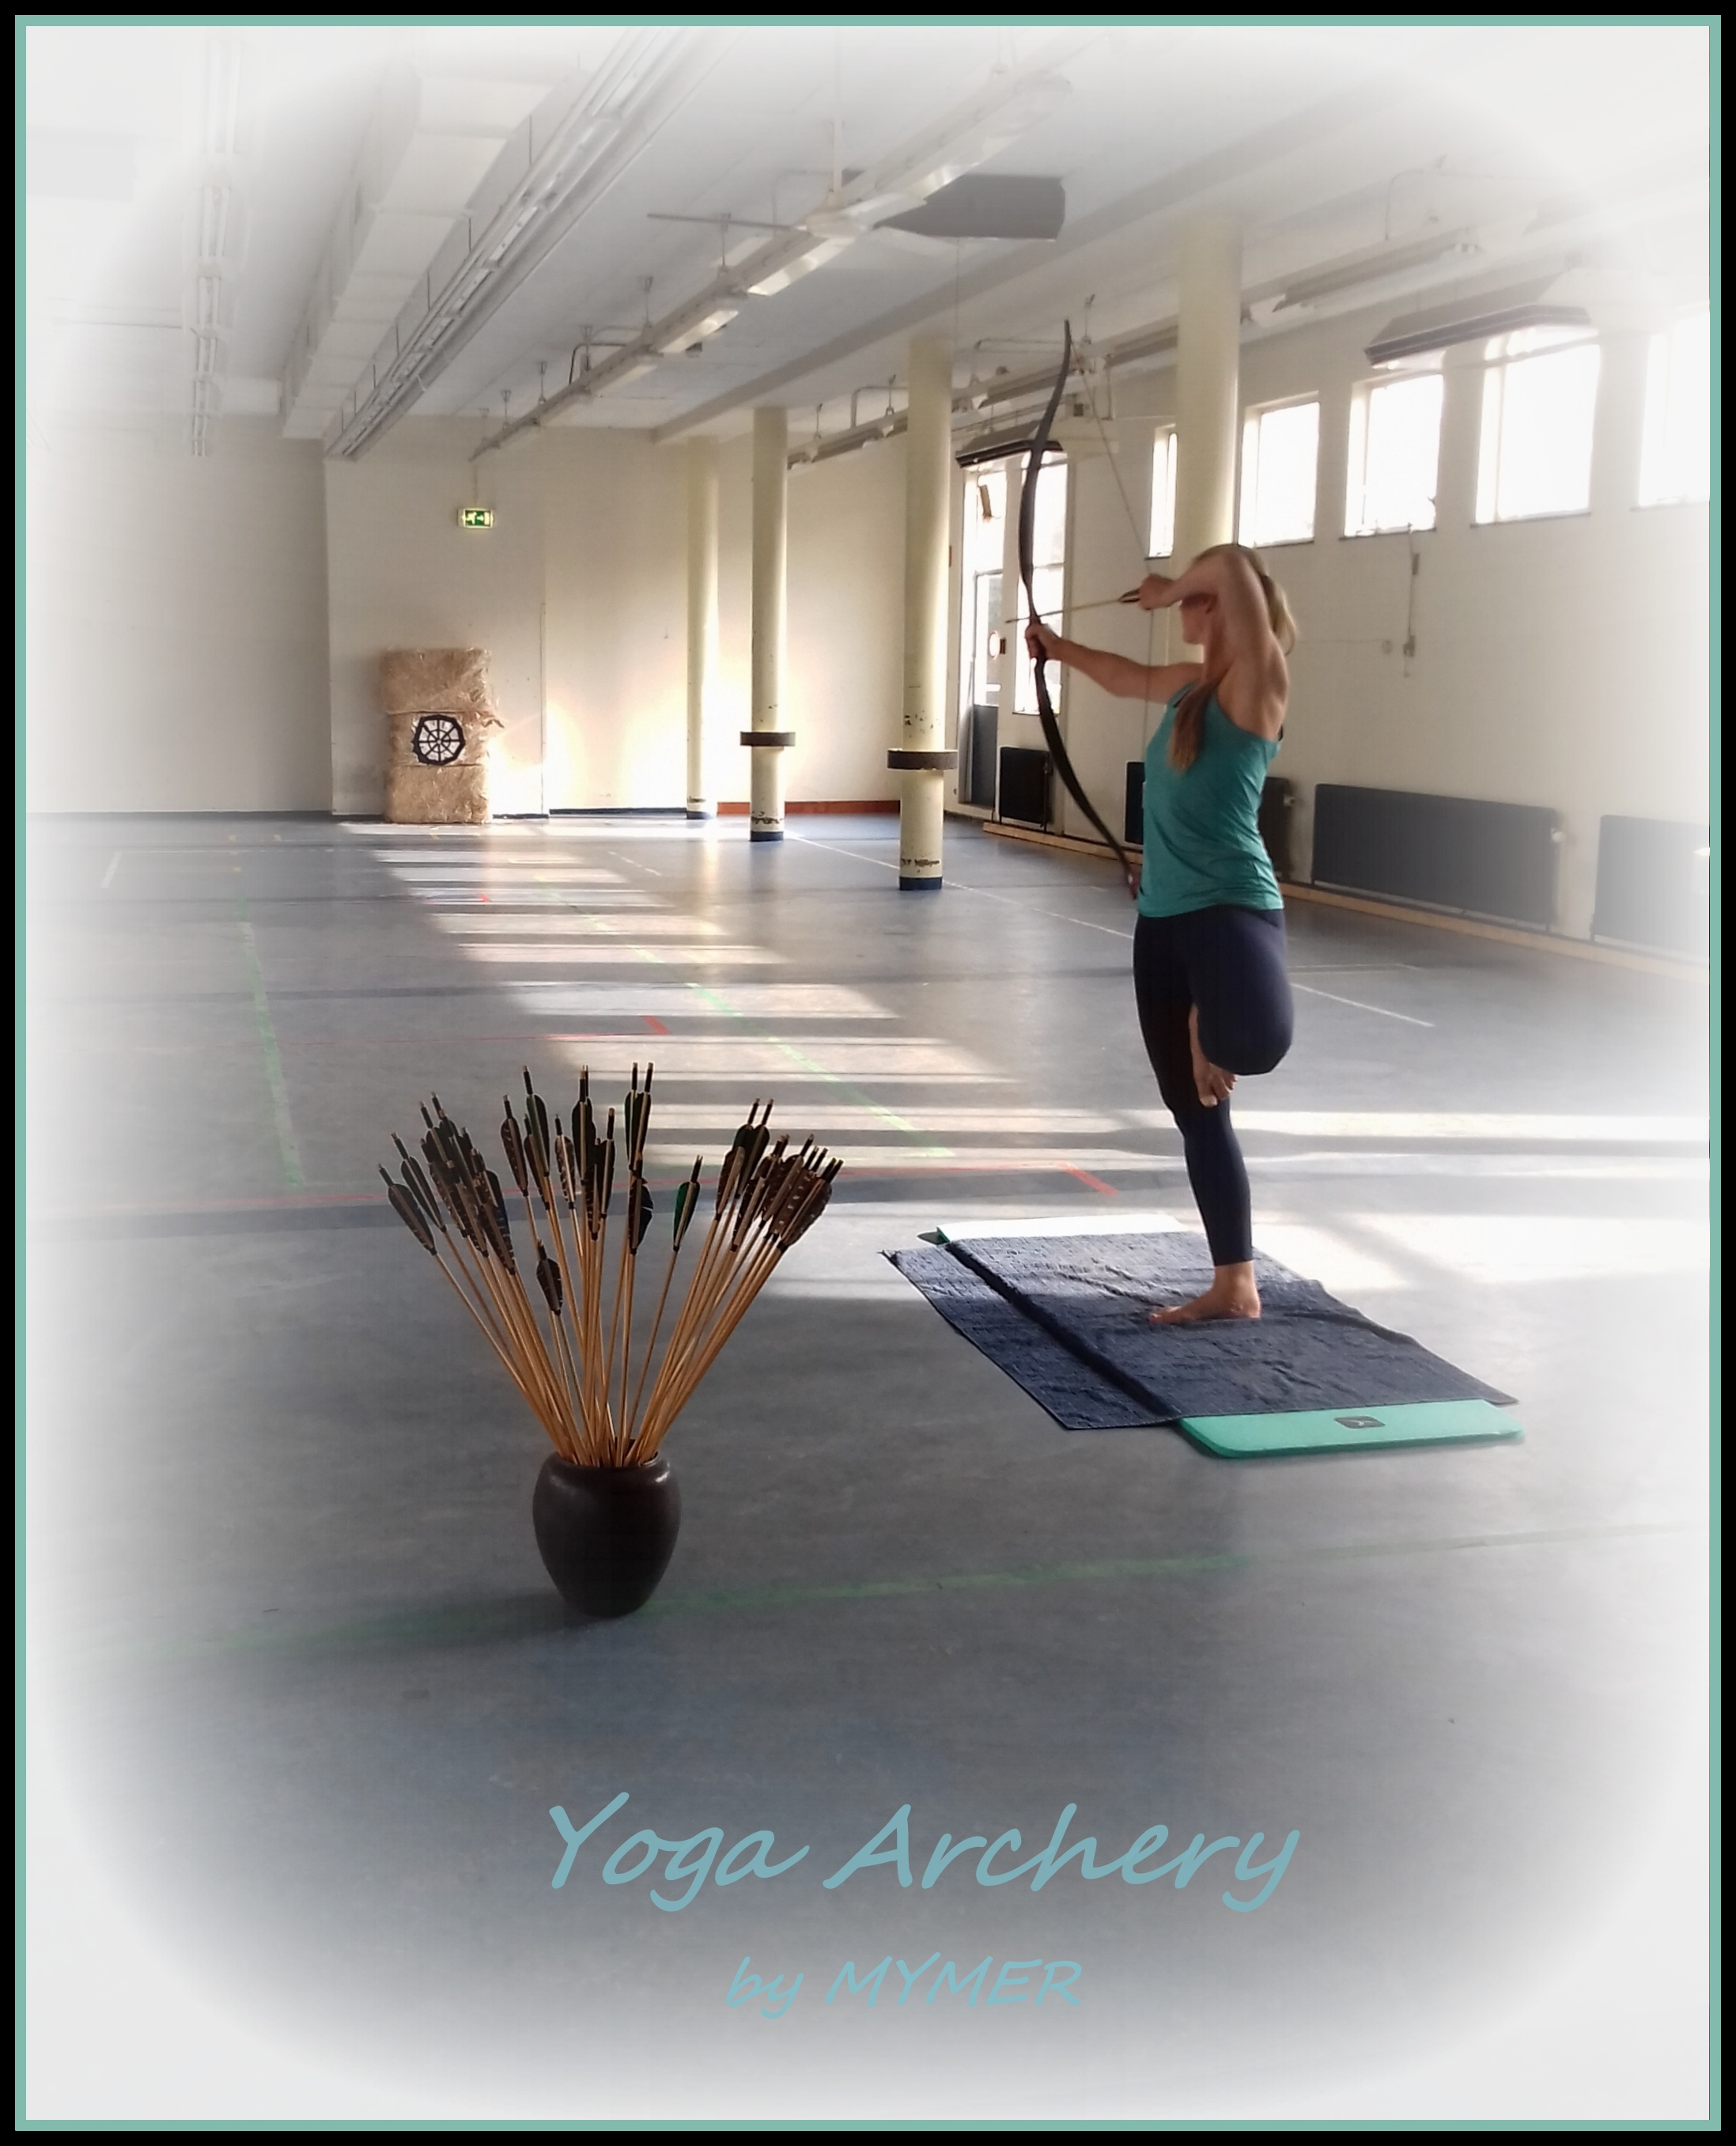 yoga-archery-mymer-tree-pose-franciska-de-bruijne